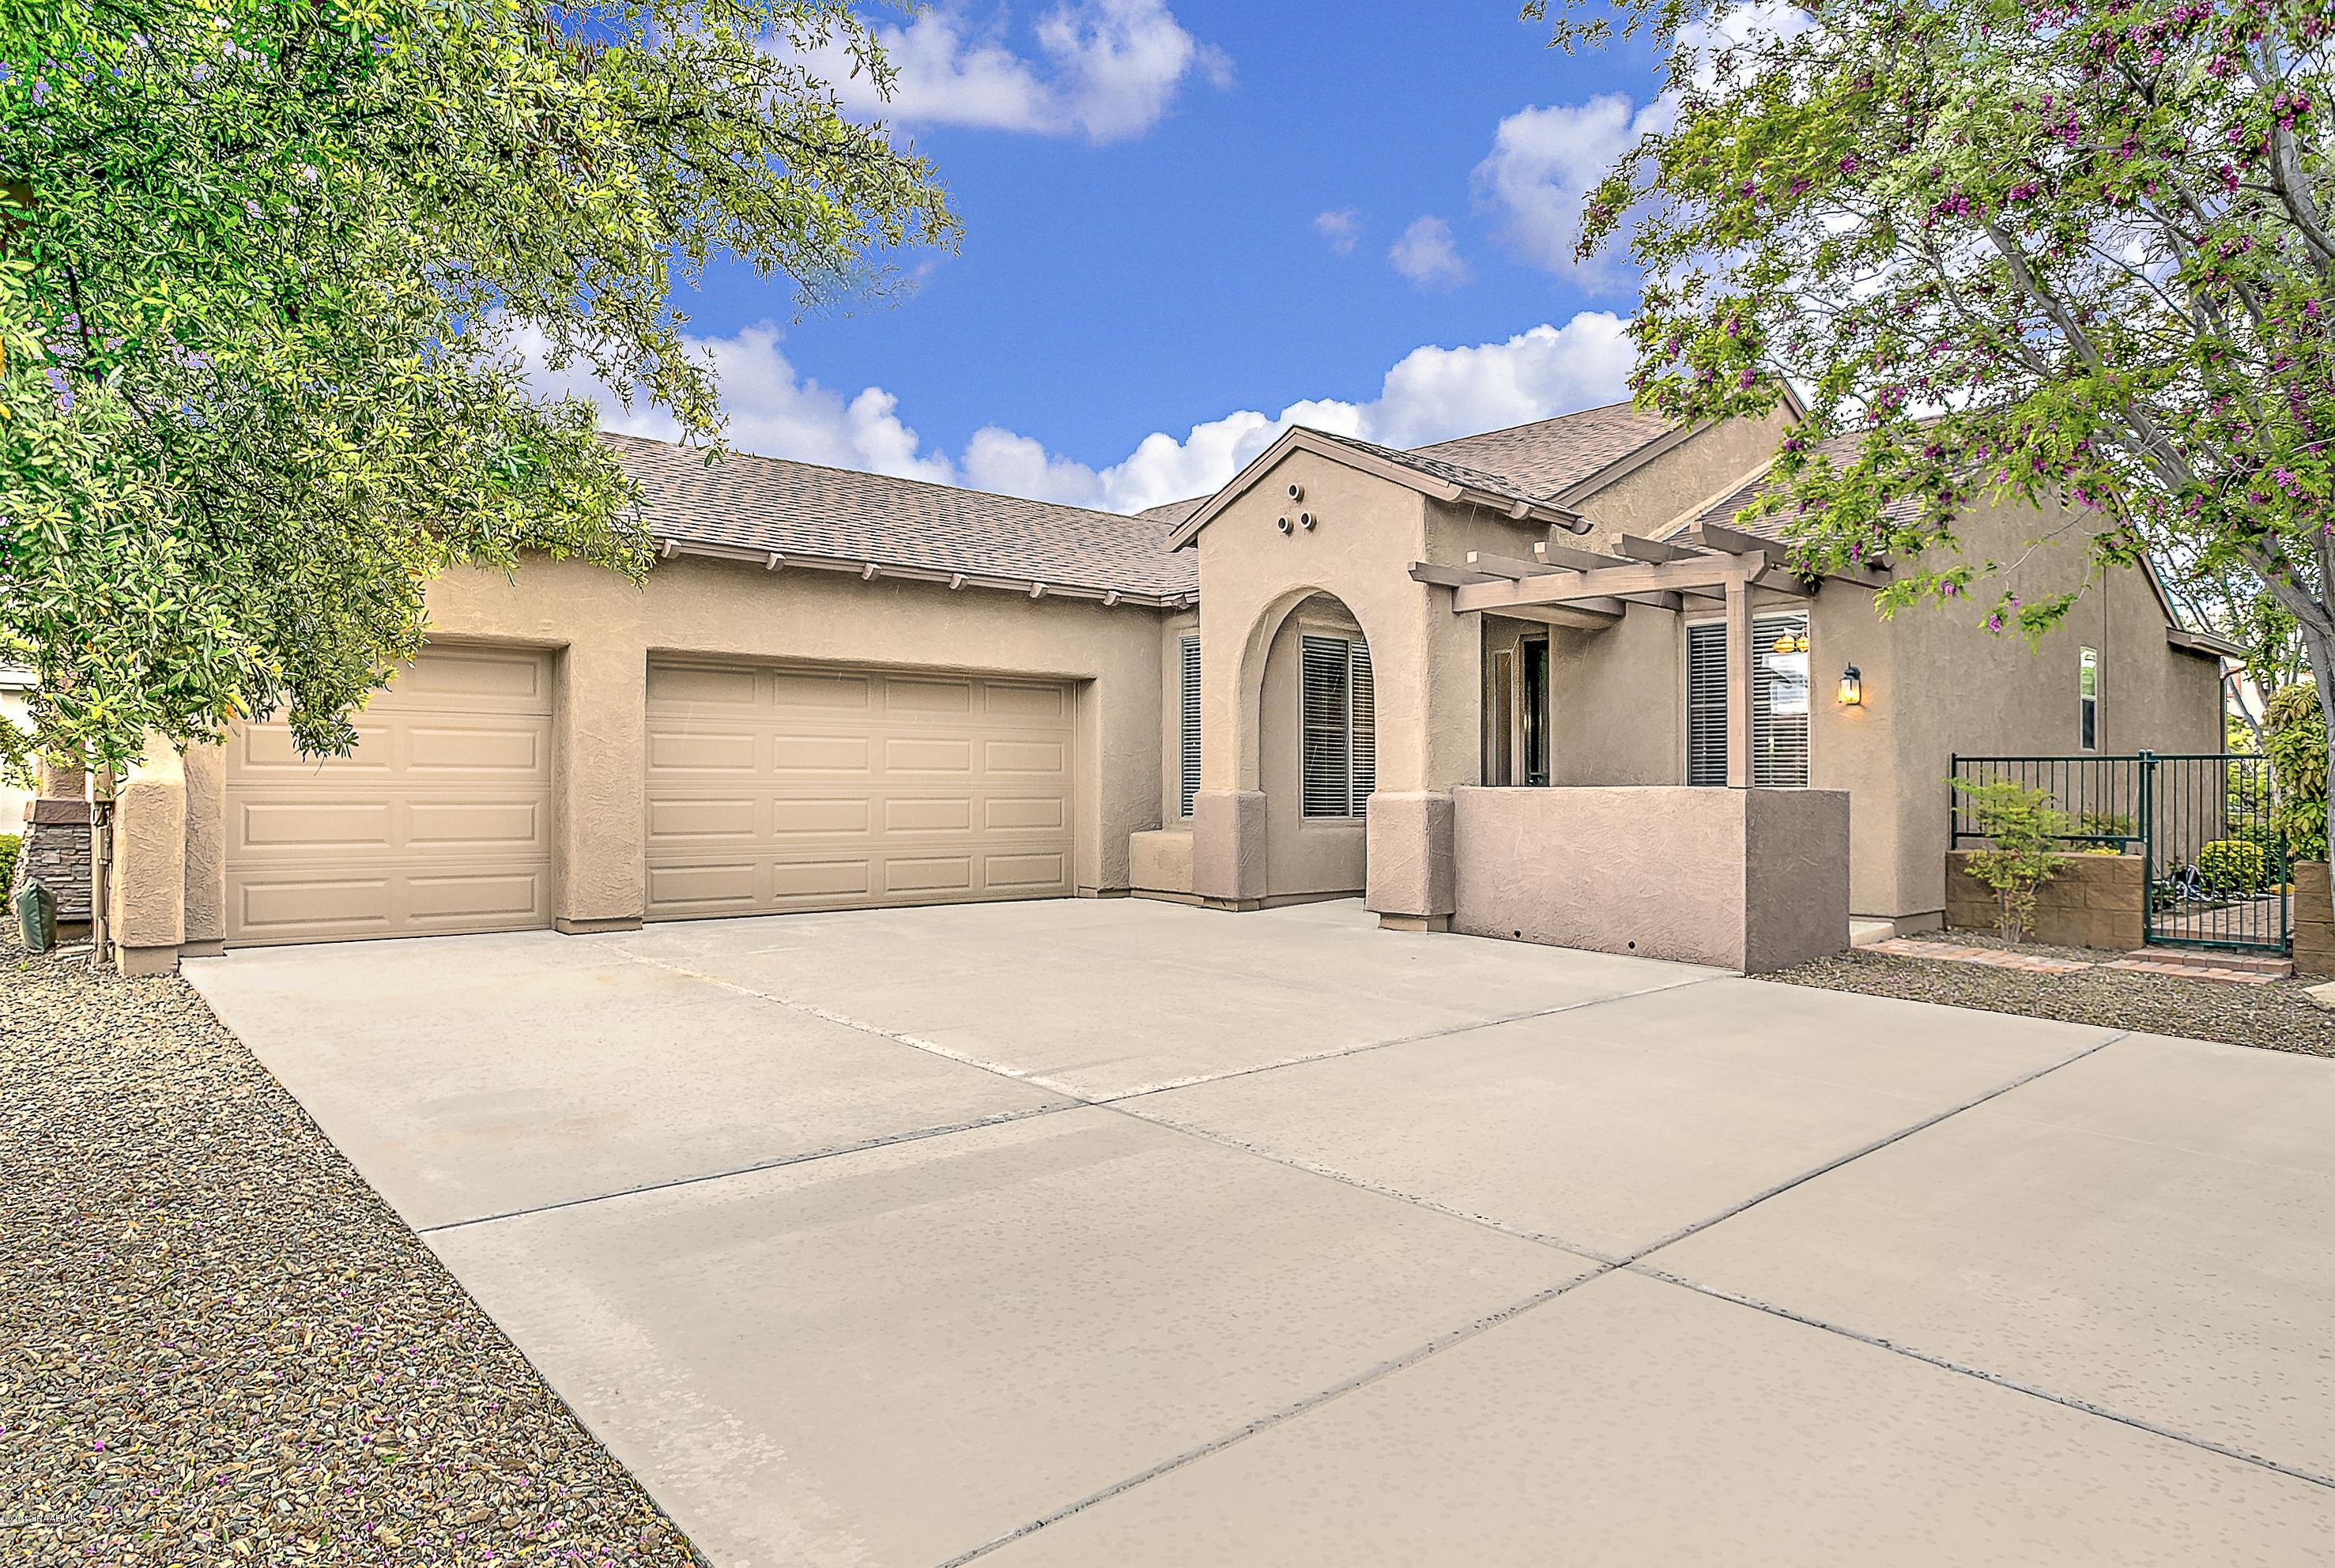 7155 E Grass Land Drive, Prescott Valley, Arizona